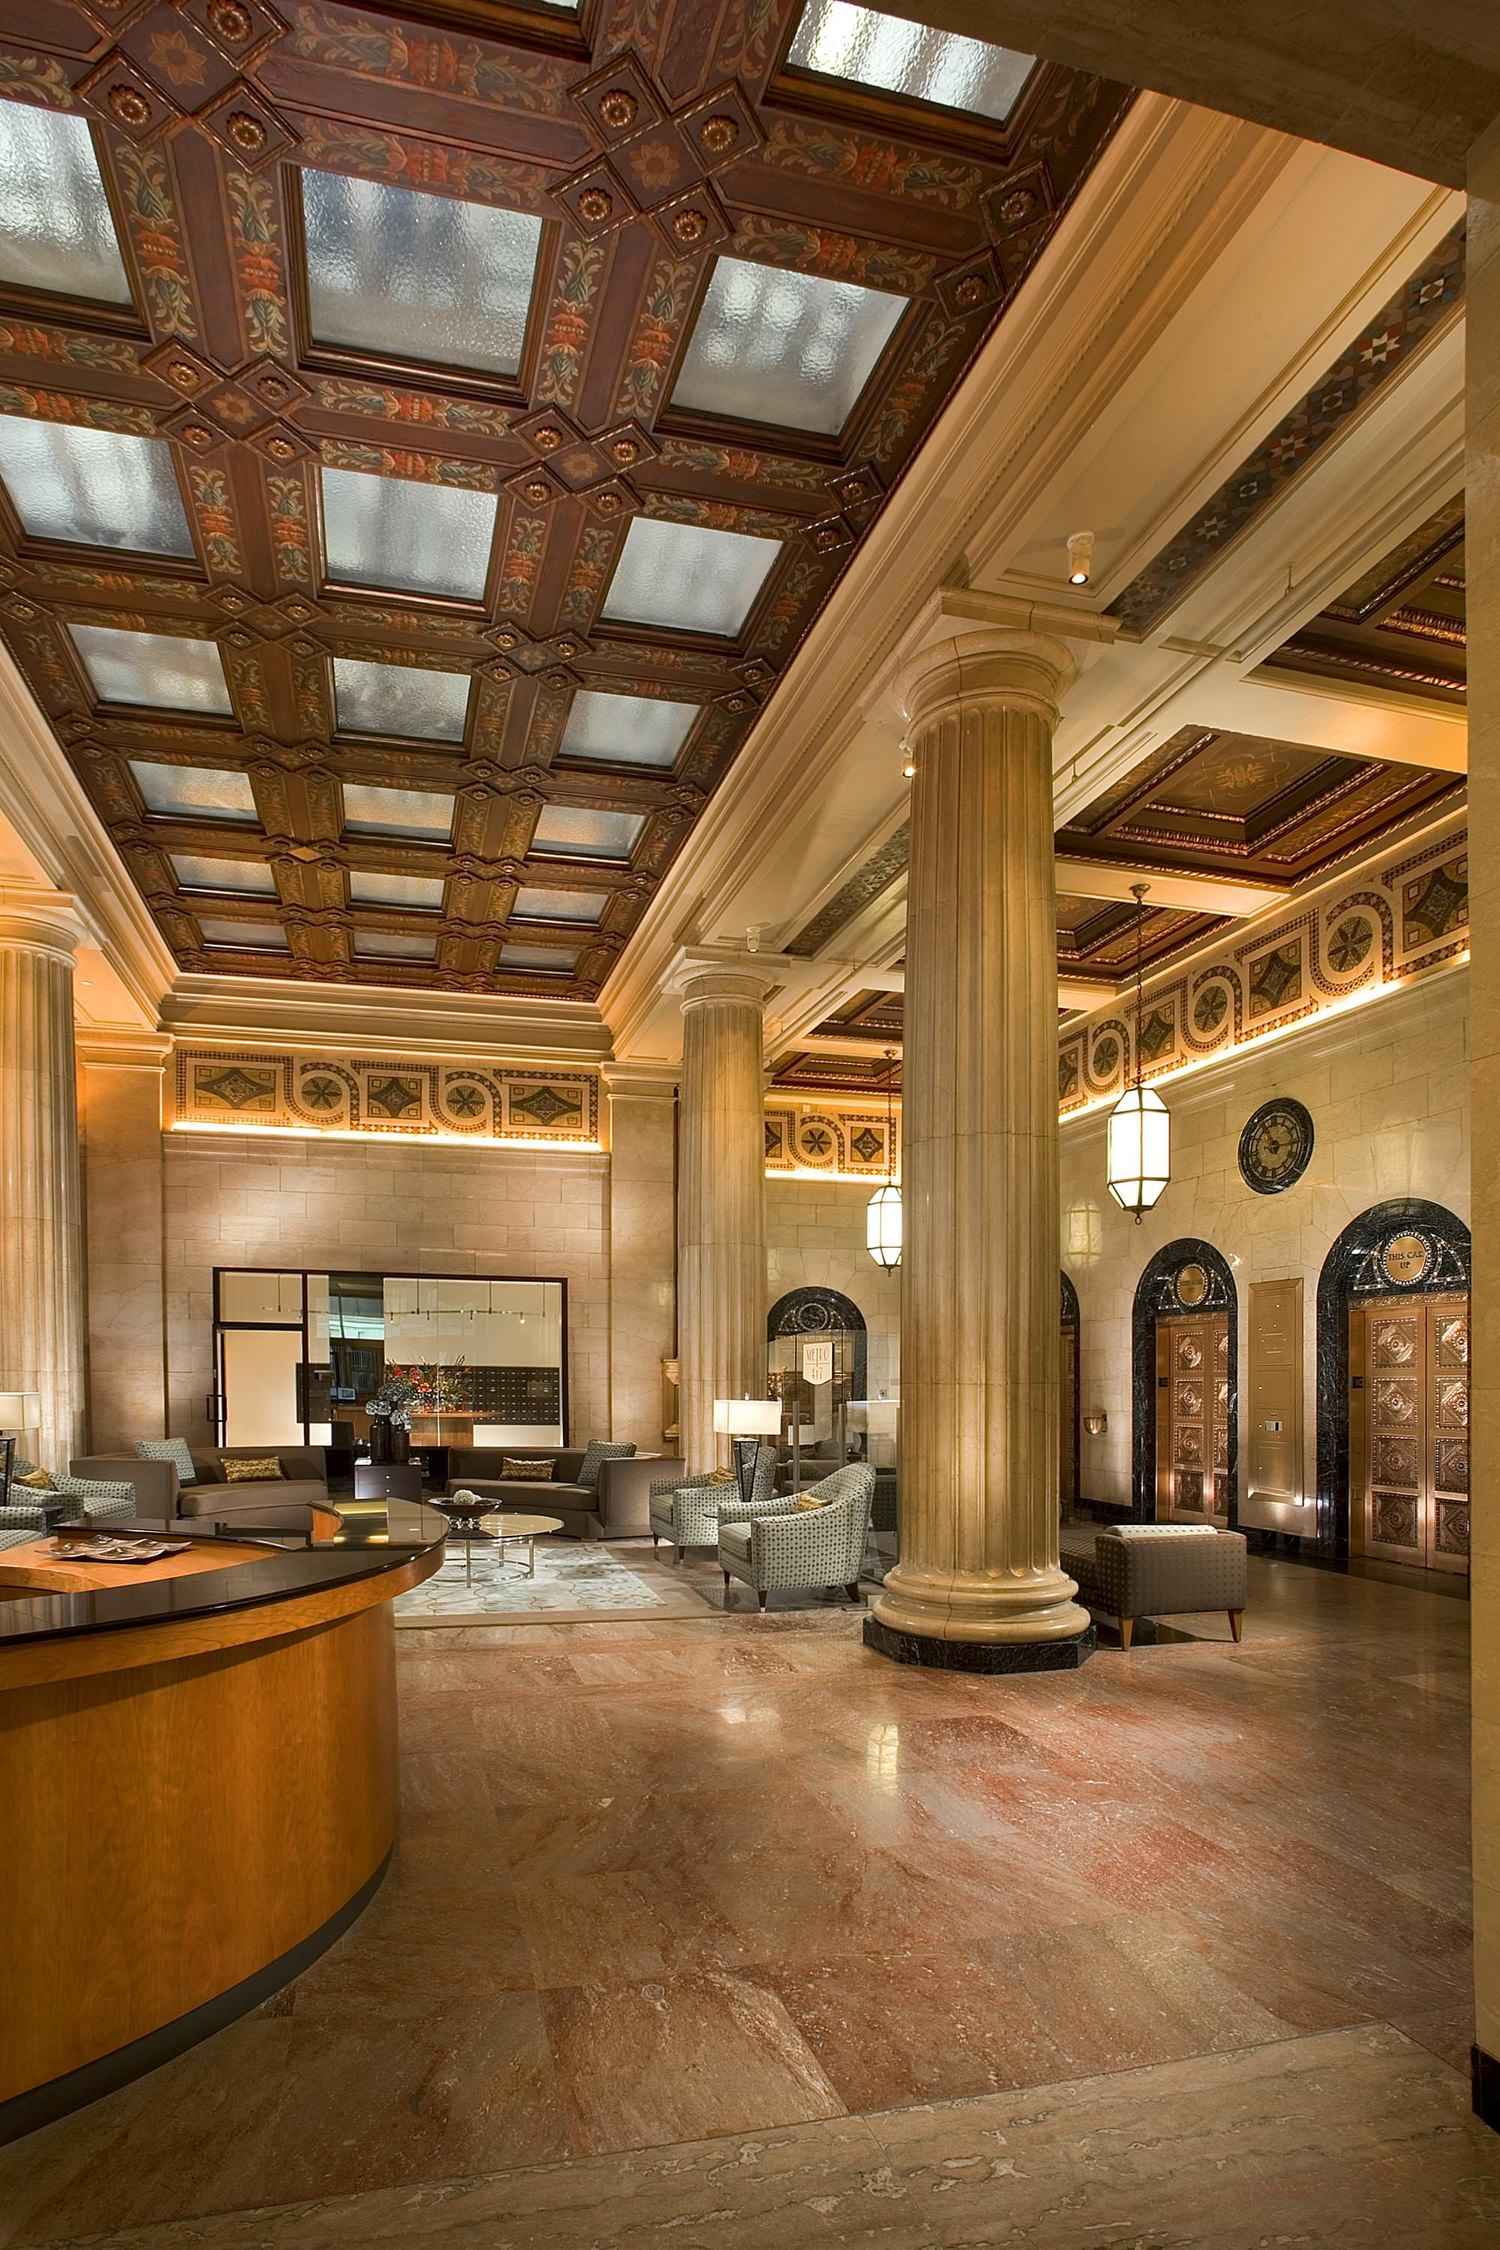 The inside of a lobby of a hotel that has some large columns in the middle of it.